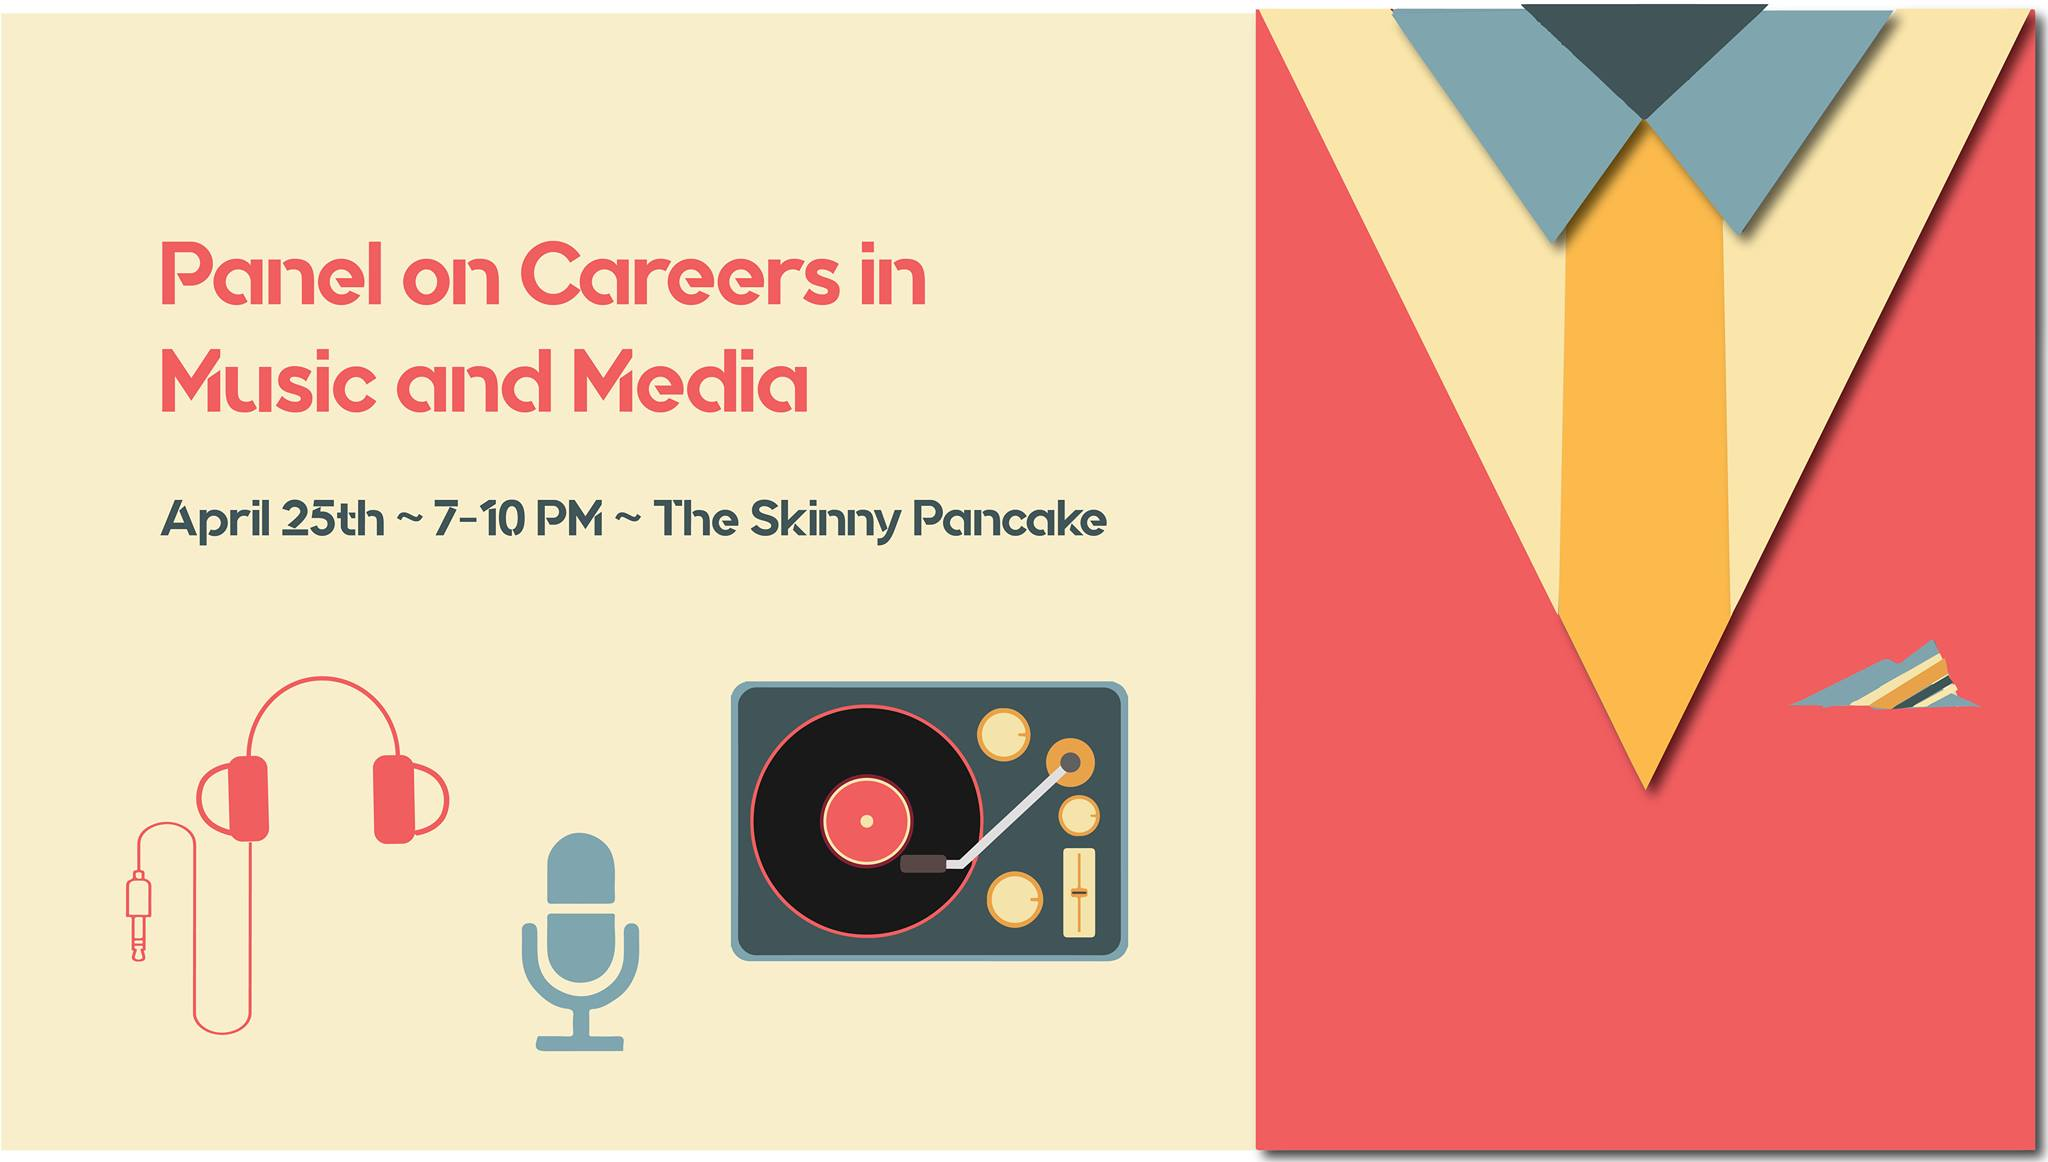 WRUV Presents: Panel on Careers in Music and Media